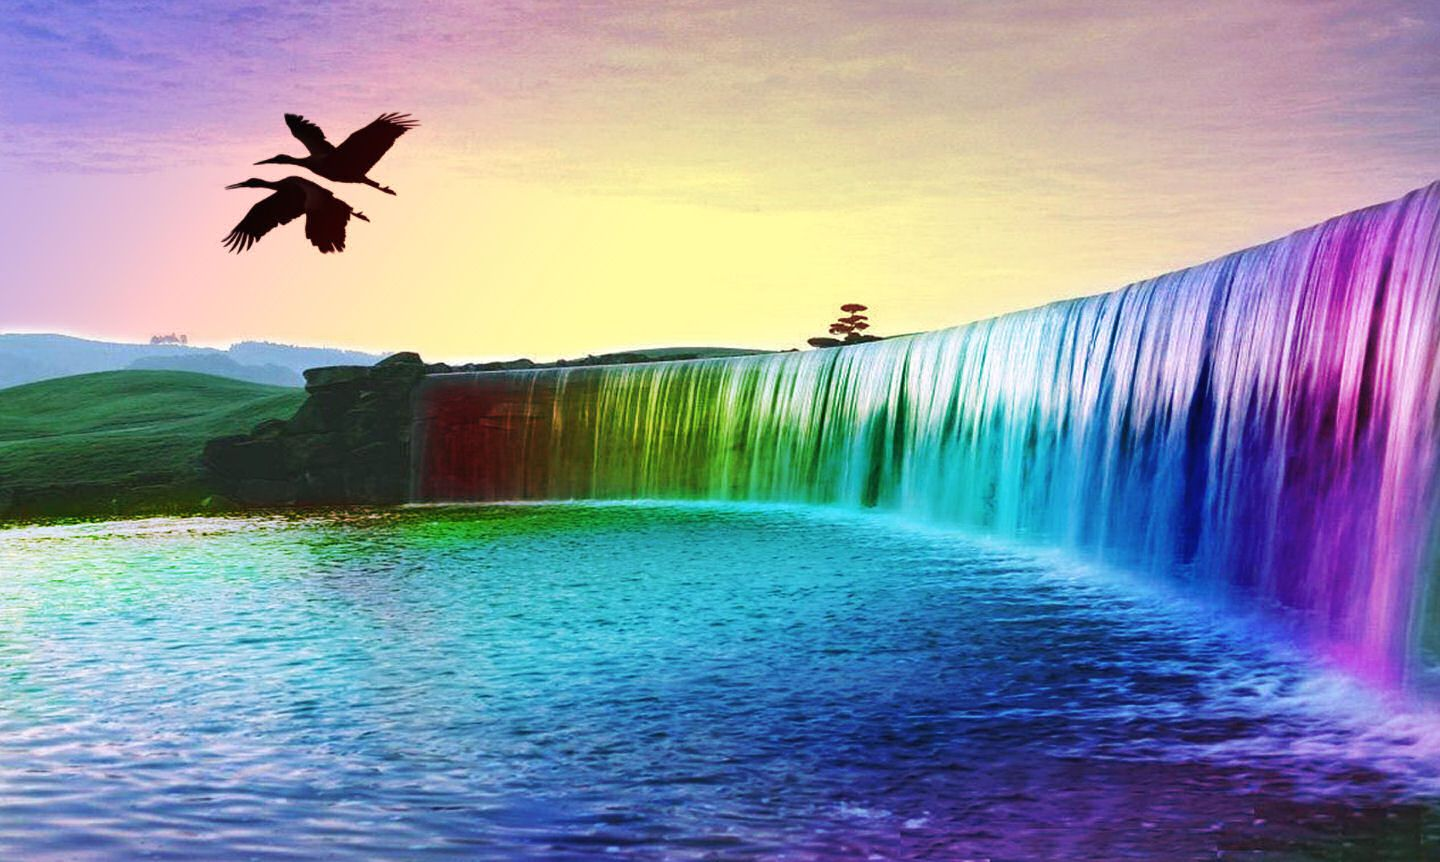 Beautiful Rainbow Waterfall Nature Hd Wallpapers Free Download Rainbow Waterfall Colorful Landscape Waterfall Wallpaper